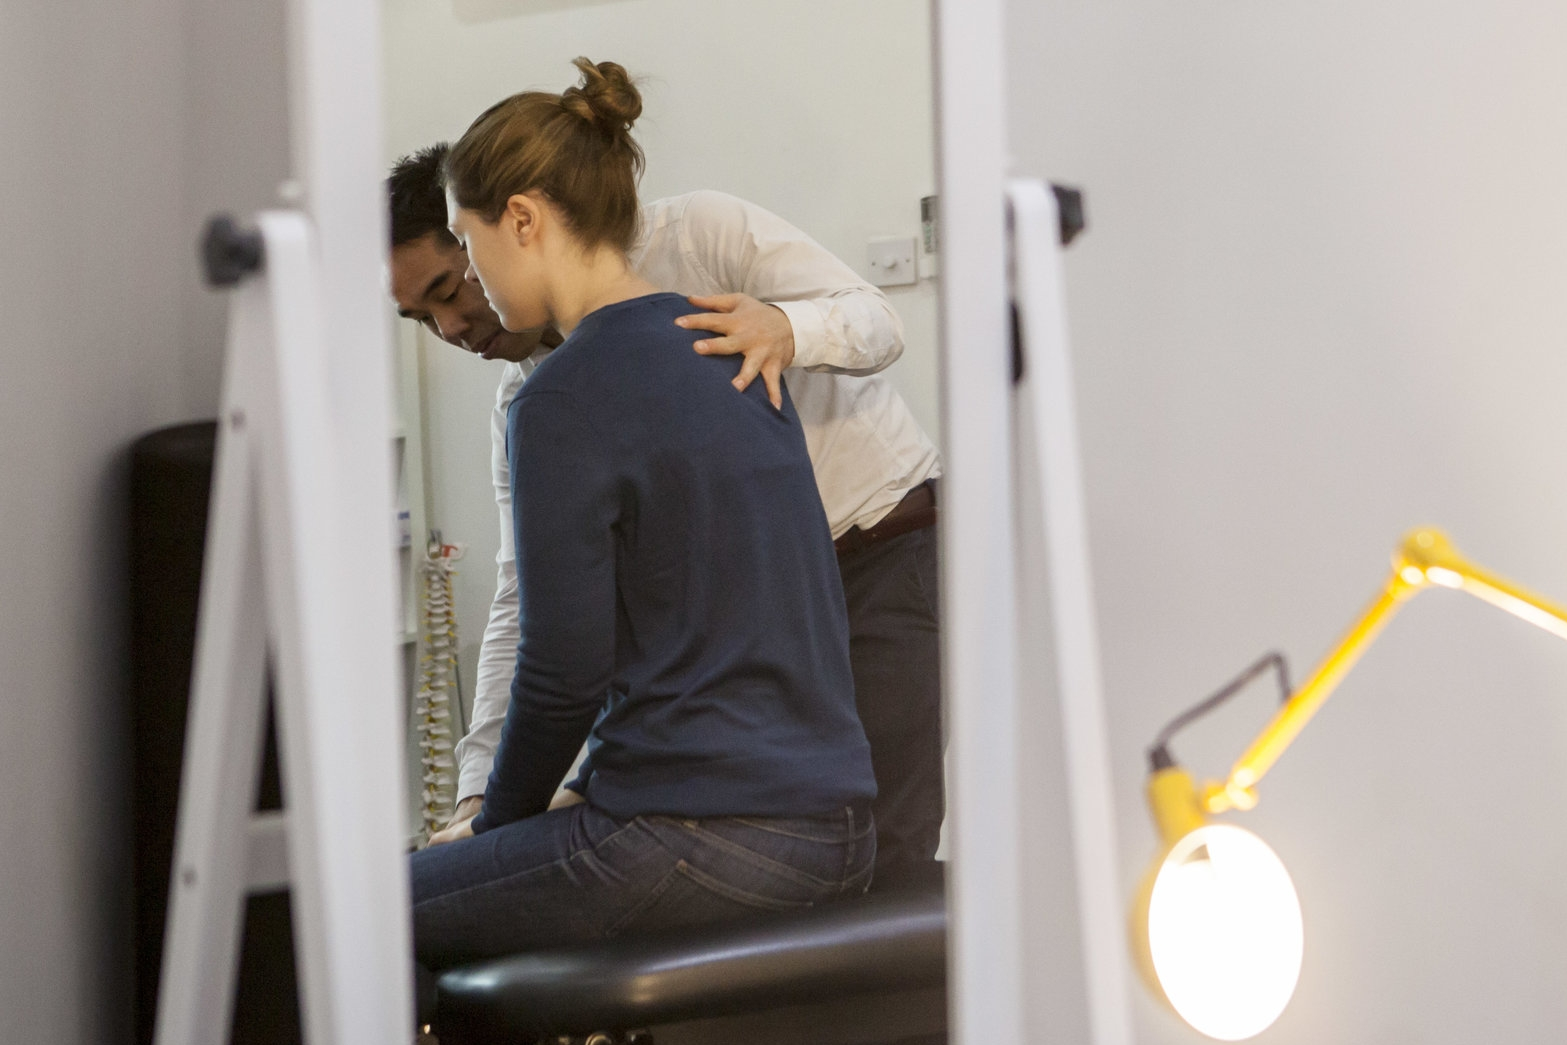 CHIROPRACTOR PRICES - Initial assessment & treatment | £75Follow up appointment | £40